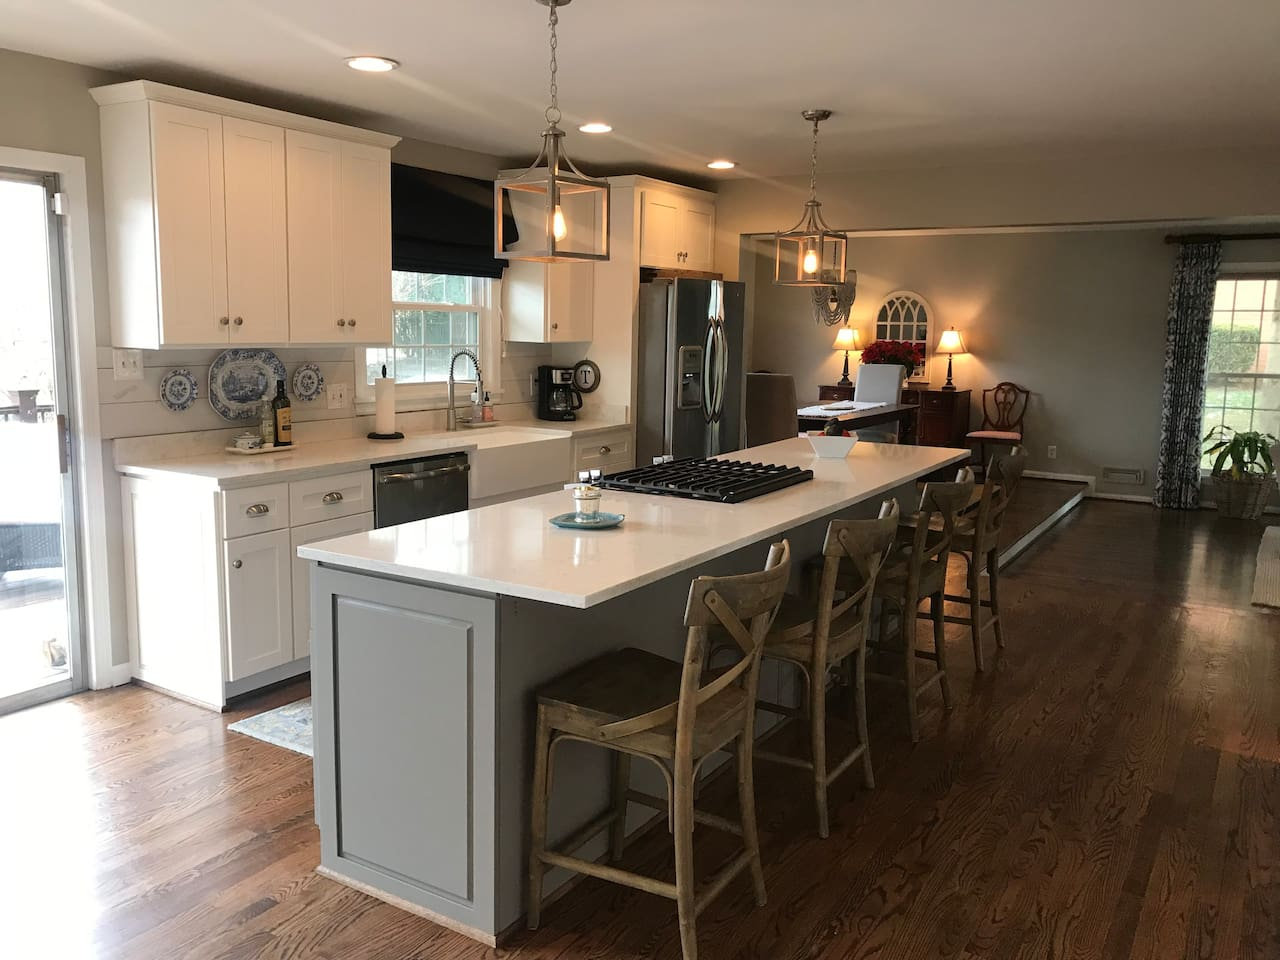 Kitchen with stainless steel appliances and gas stove top. Walks out to a back deck.